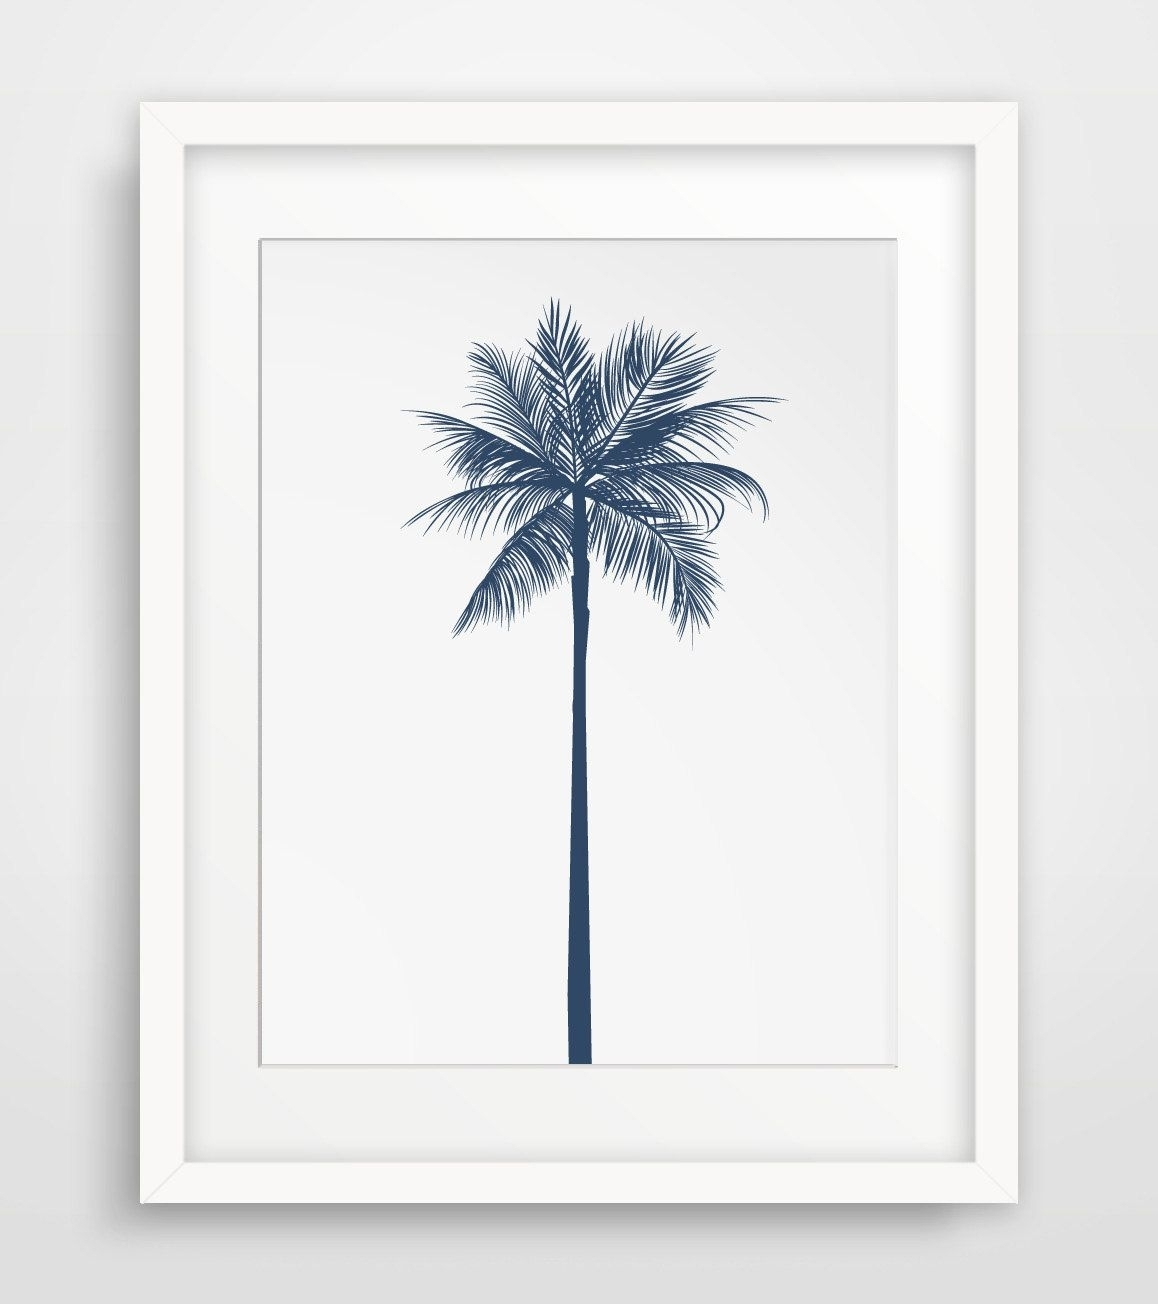 Palm Tree Decor, Navy Wall Decor, Navy Wall Print, Palm Tree Artwork In Most Up To Date Palm Tree Wall Art (View 11 of 20)